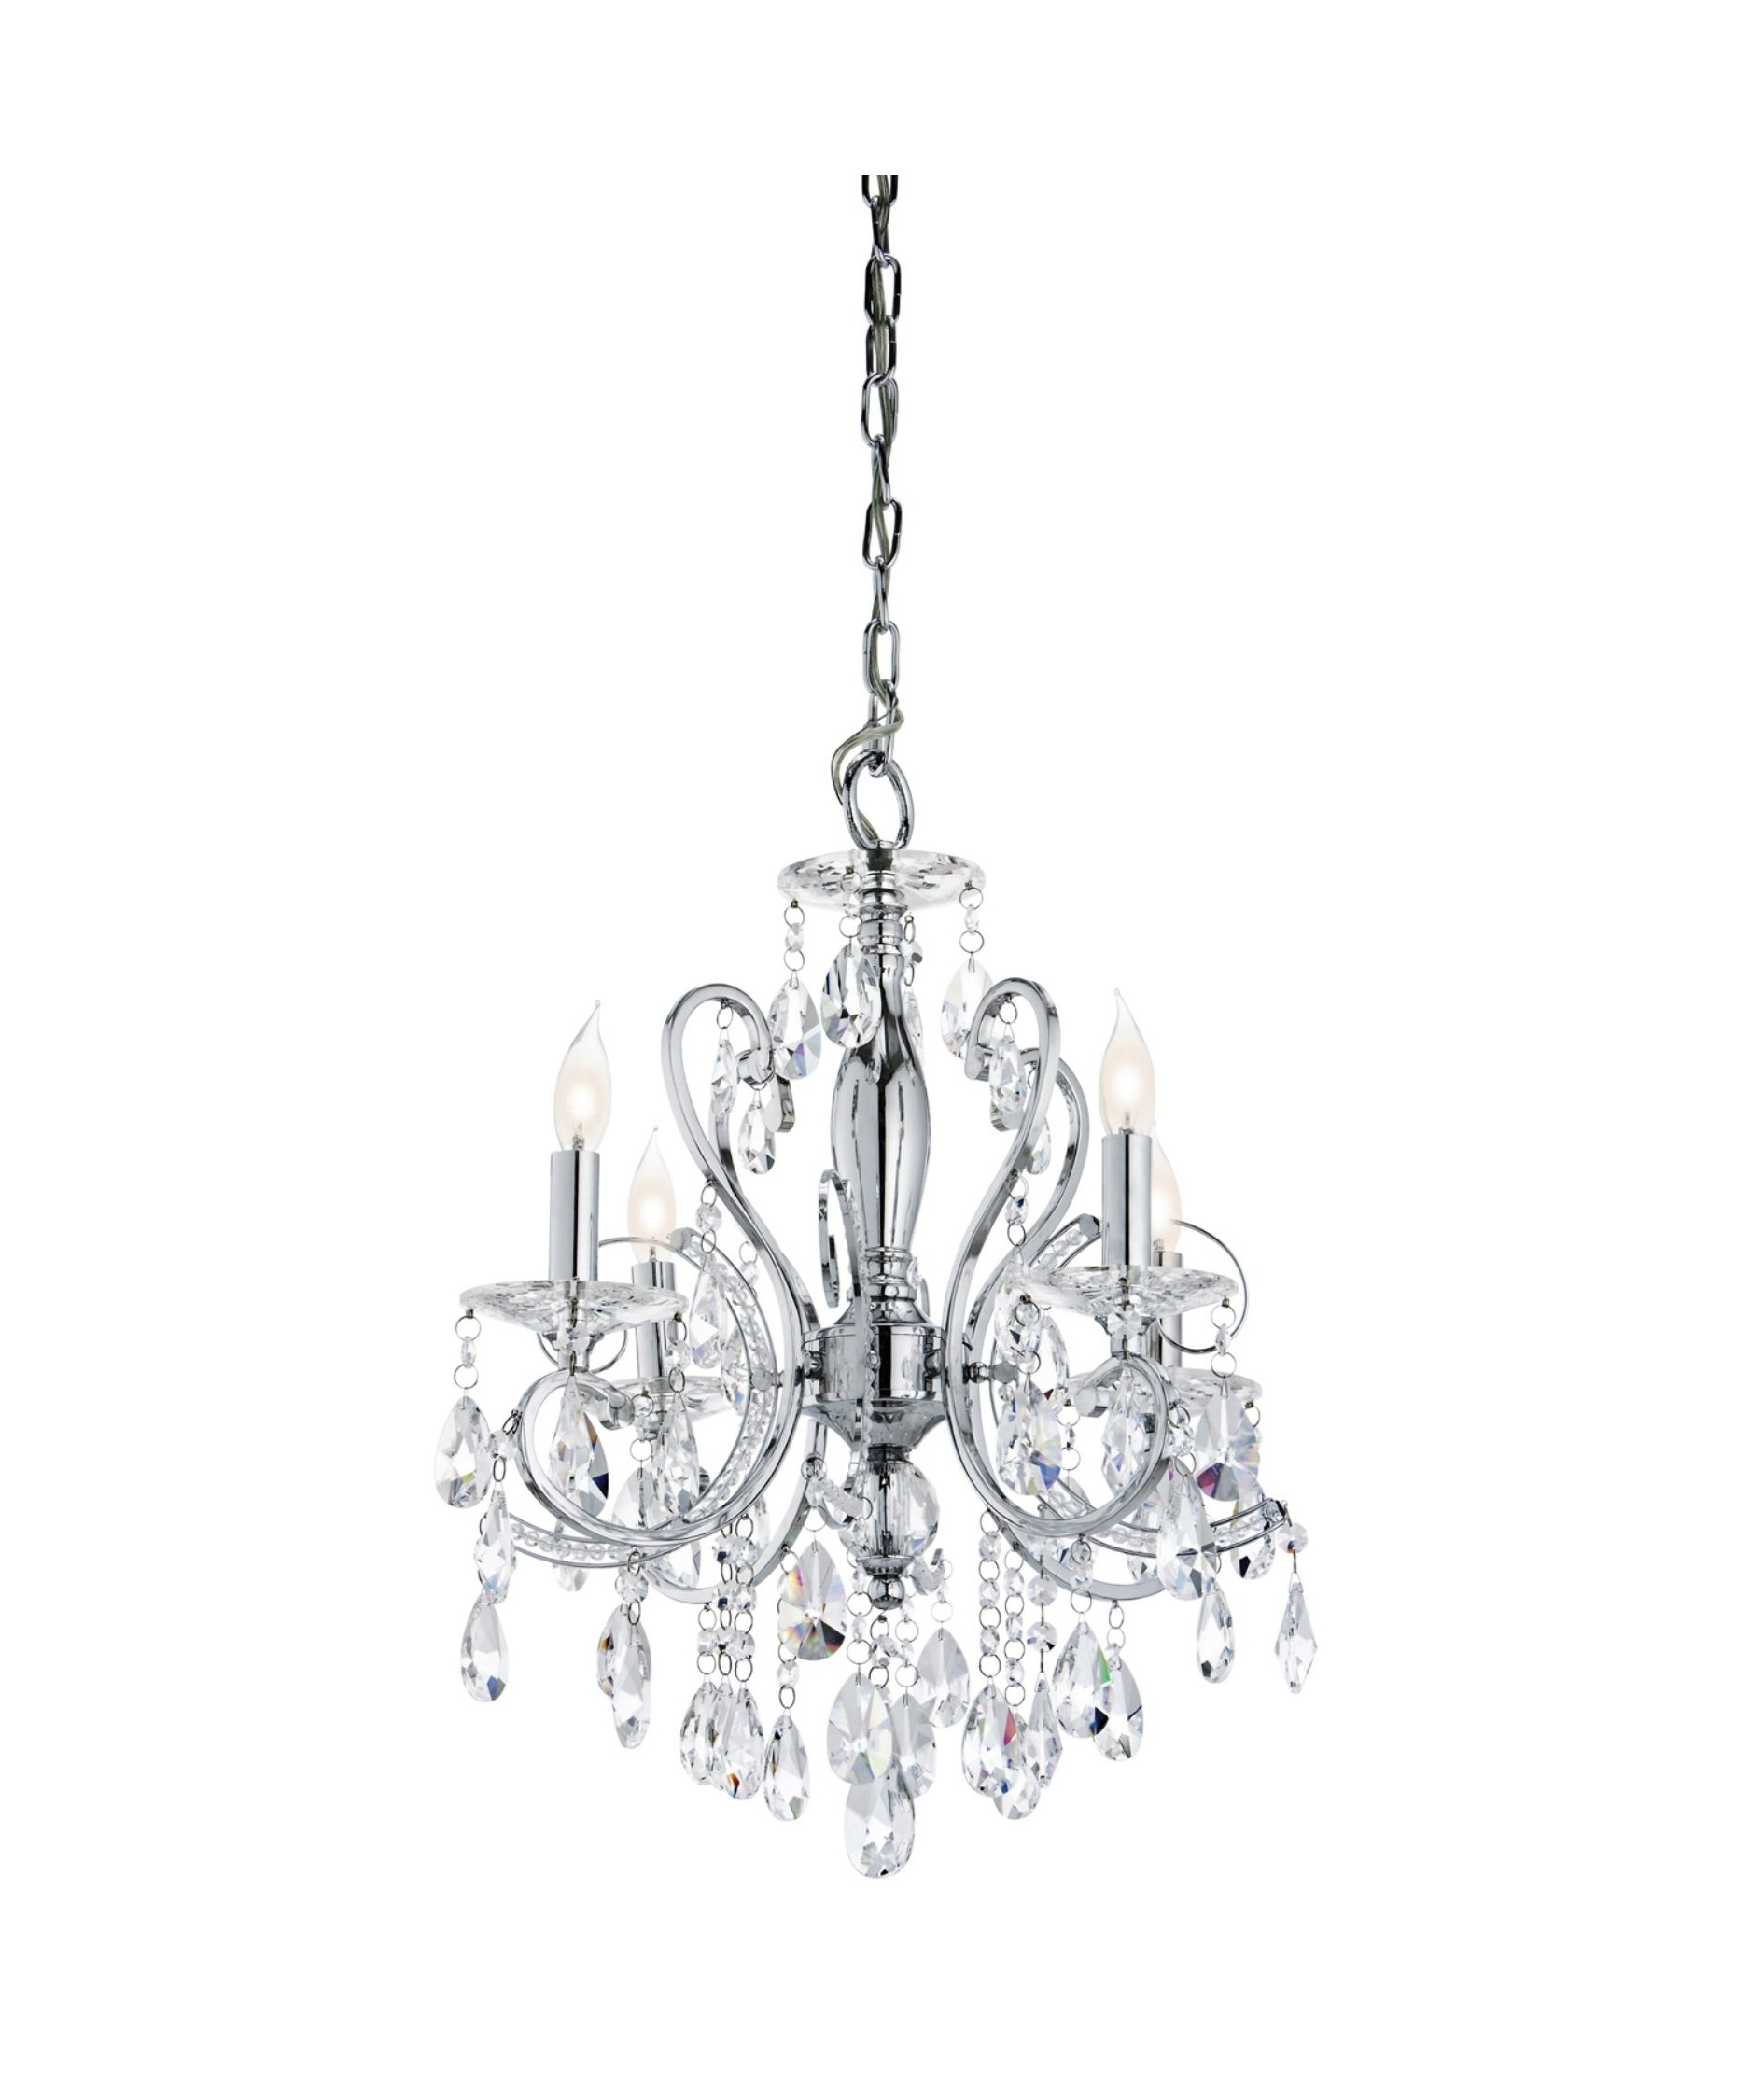 Small Chrome Chandelier With Favorite Nice Mini Chandelier For Bathroom #7 Mini Crystal Chandelier (View 11 of 15)